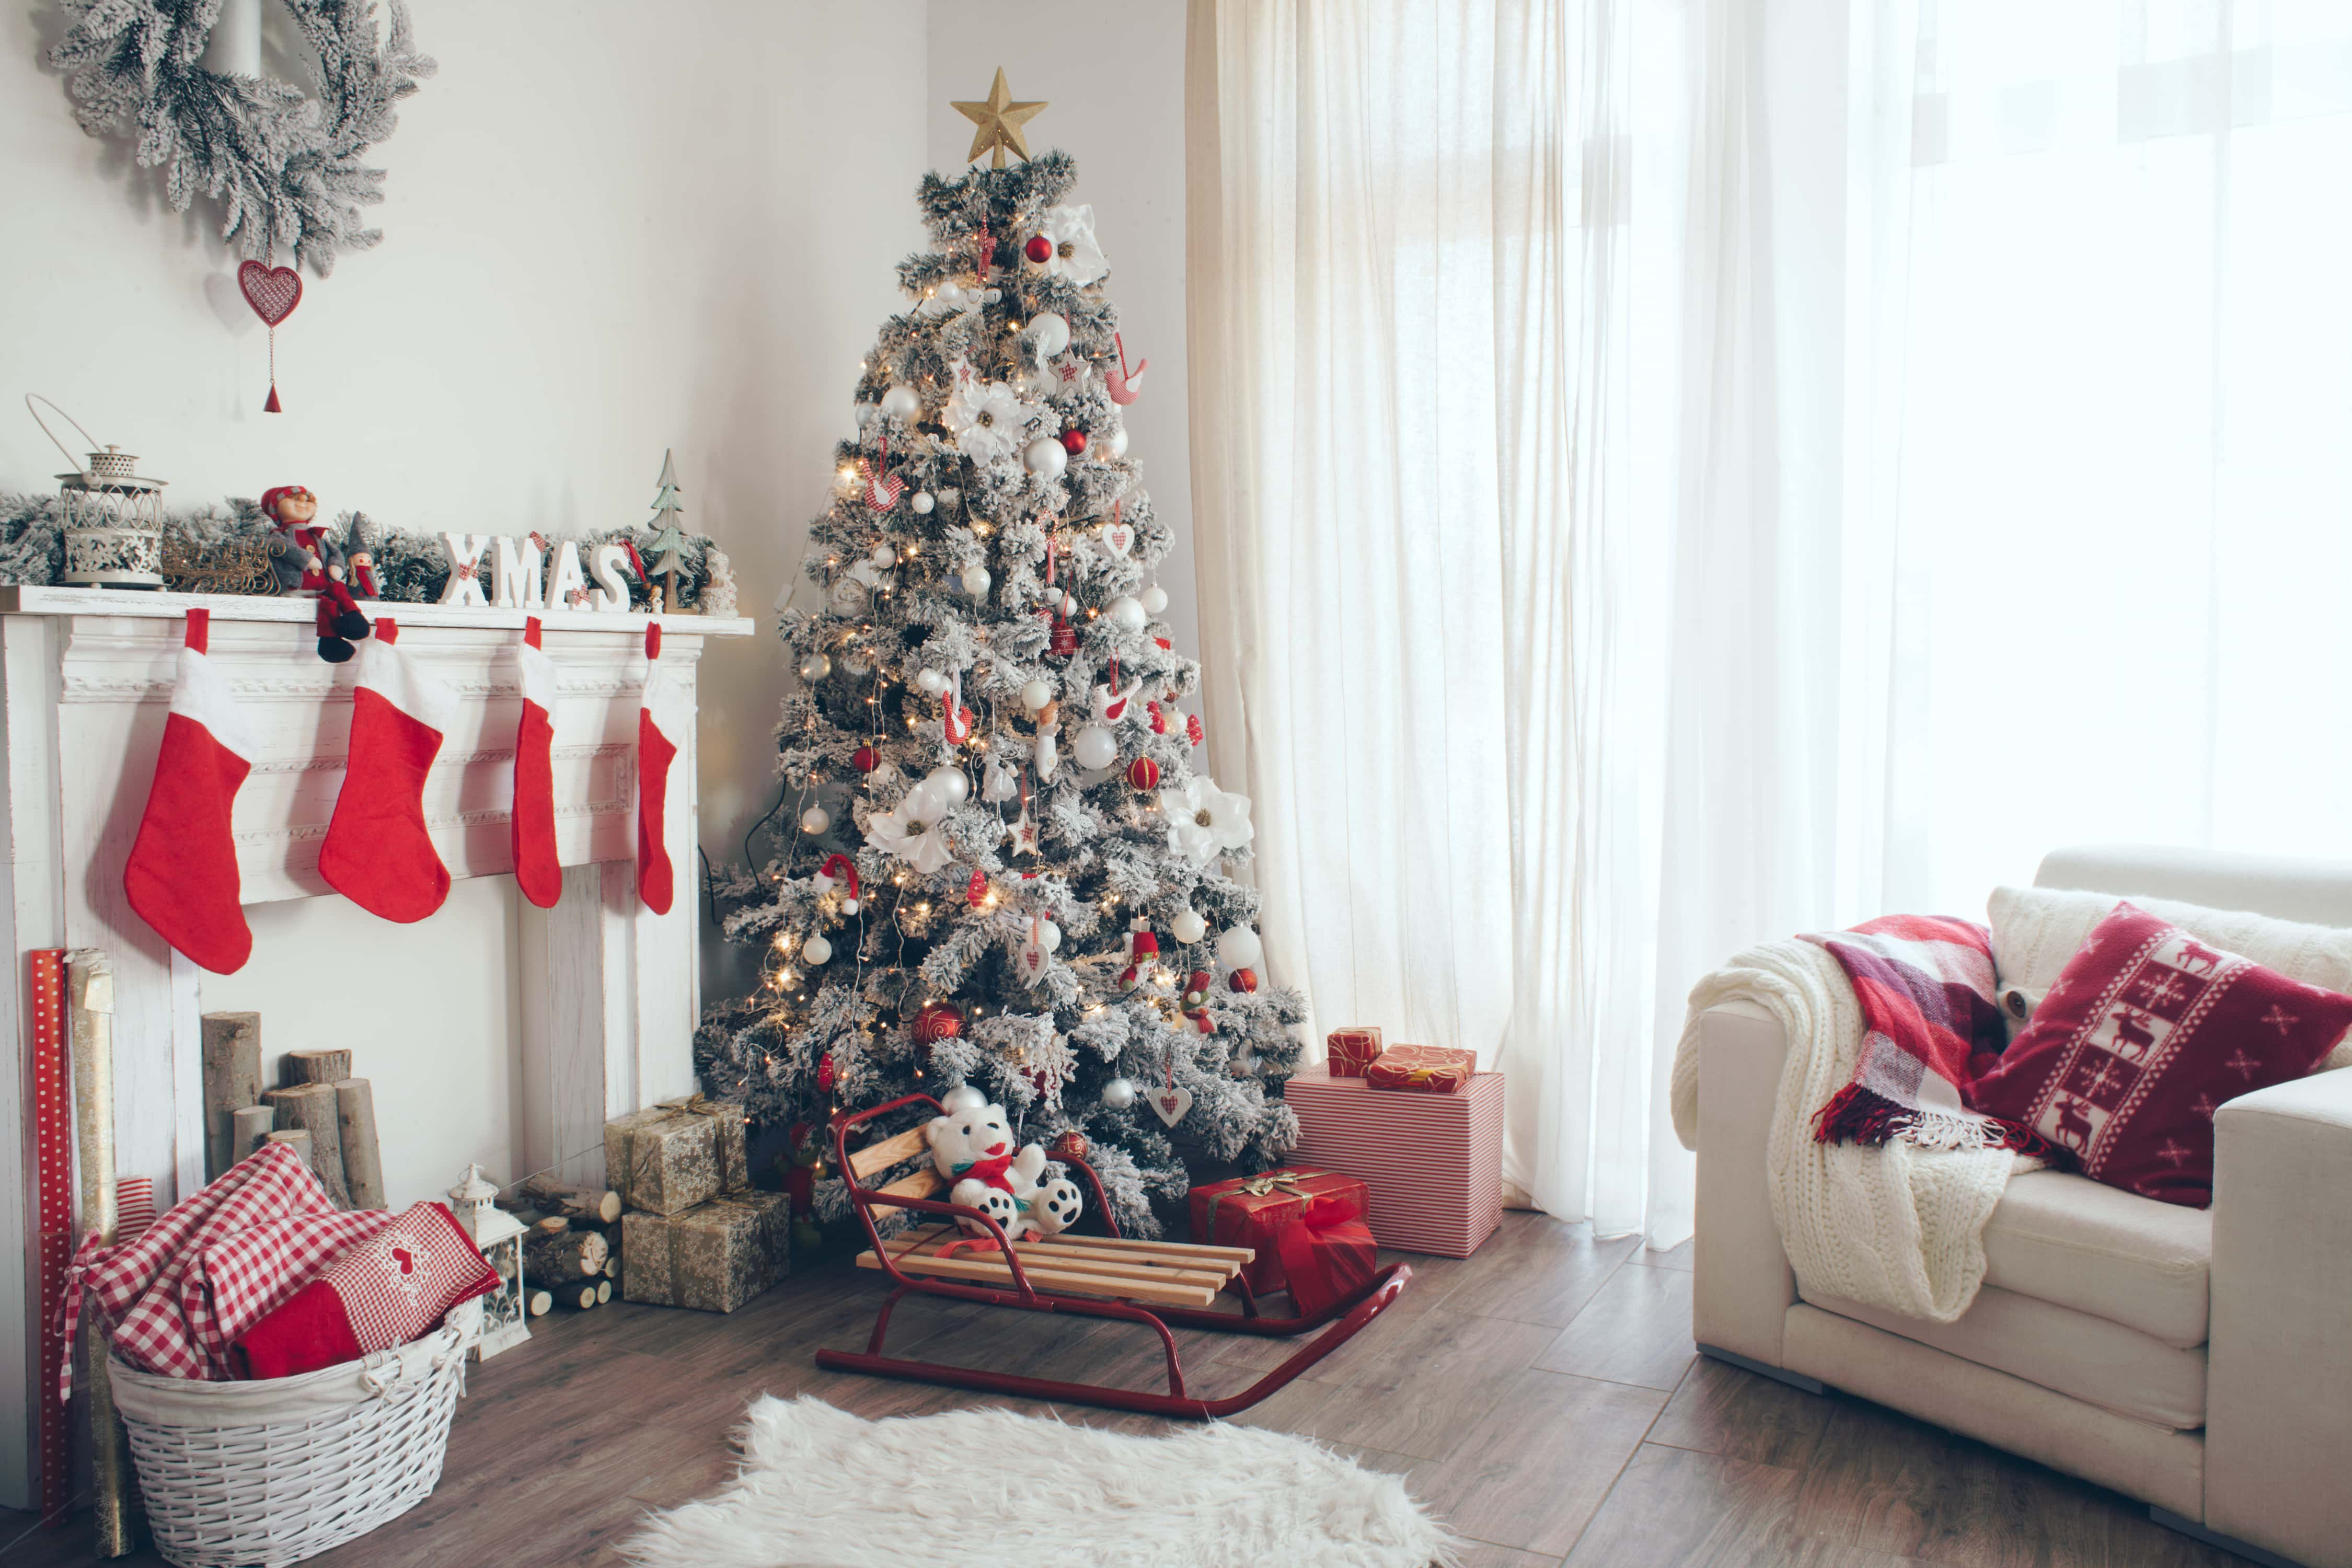 How to Choose the Perfect Christmas Tree | 951 WAYV